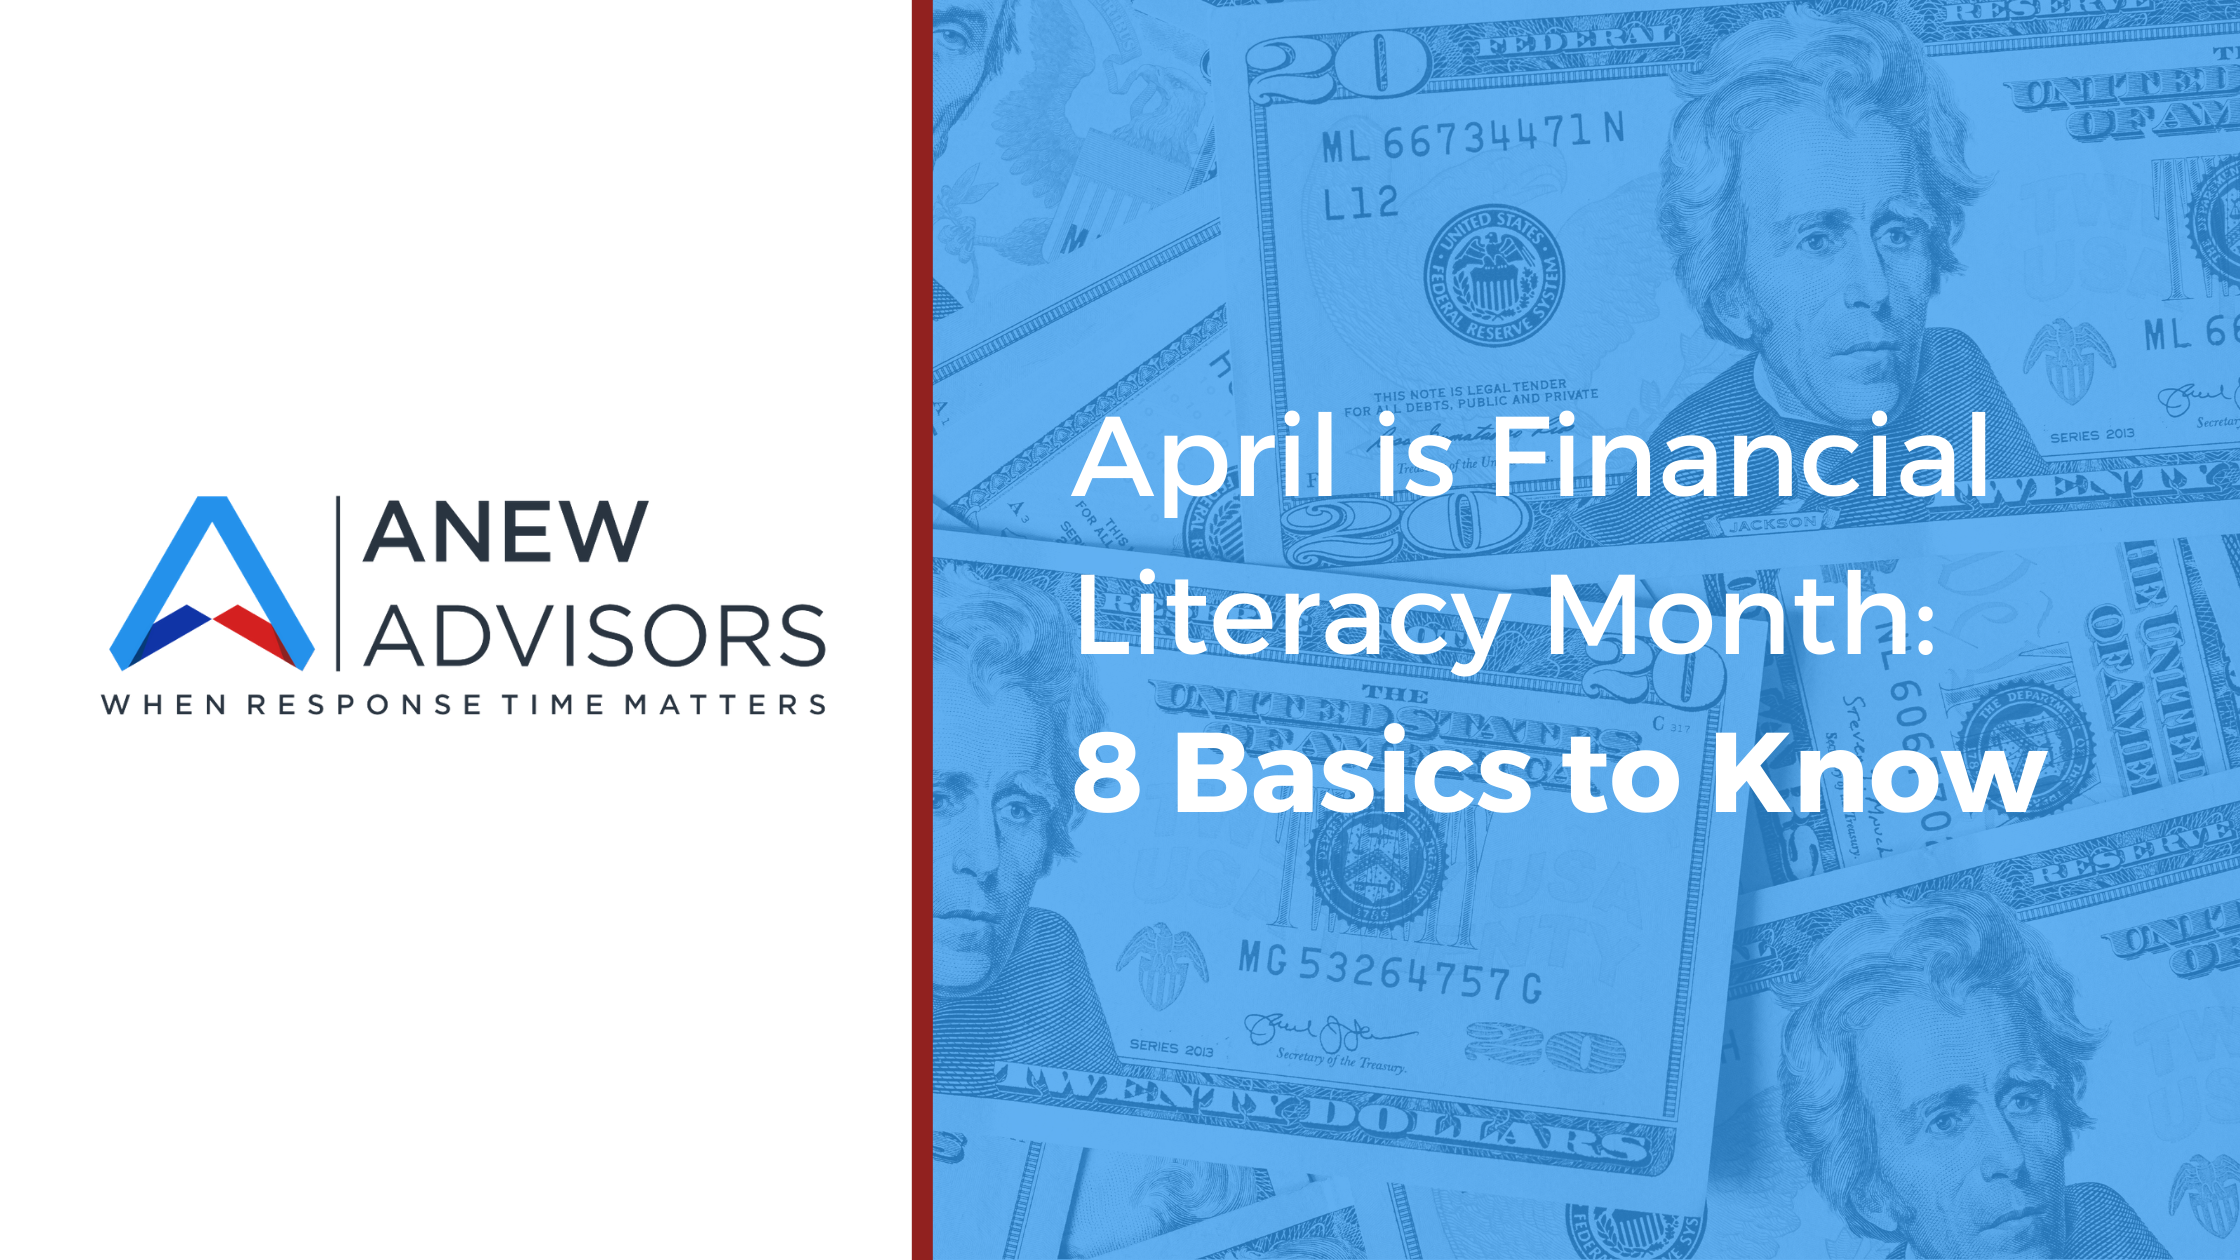 April is Financial Literacy Month: 8 Basics to Know Thumbnail